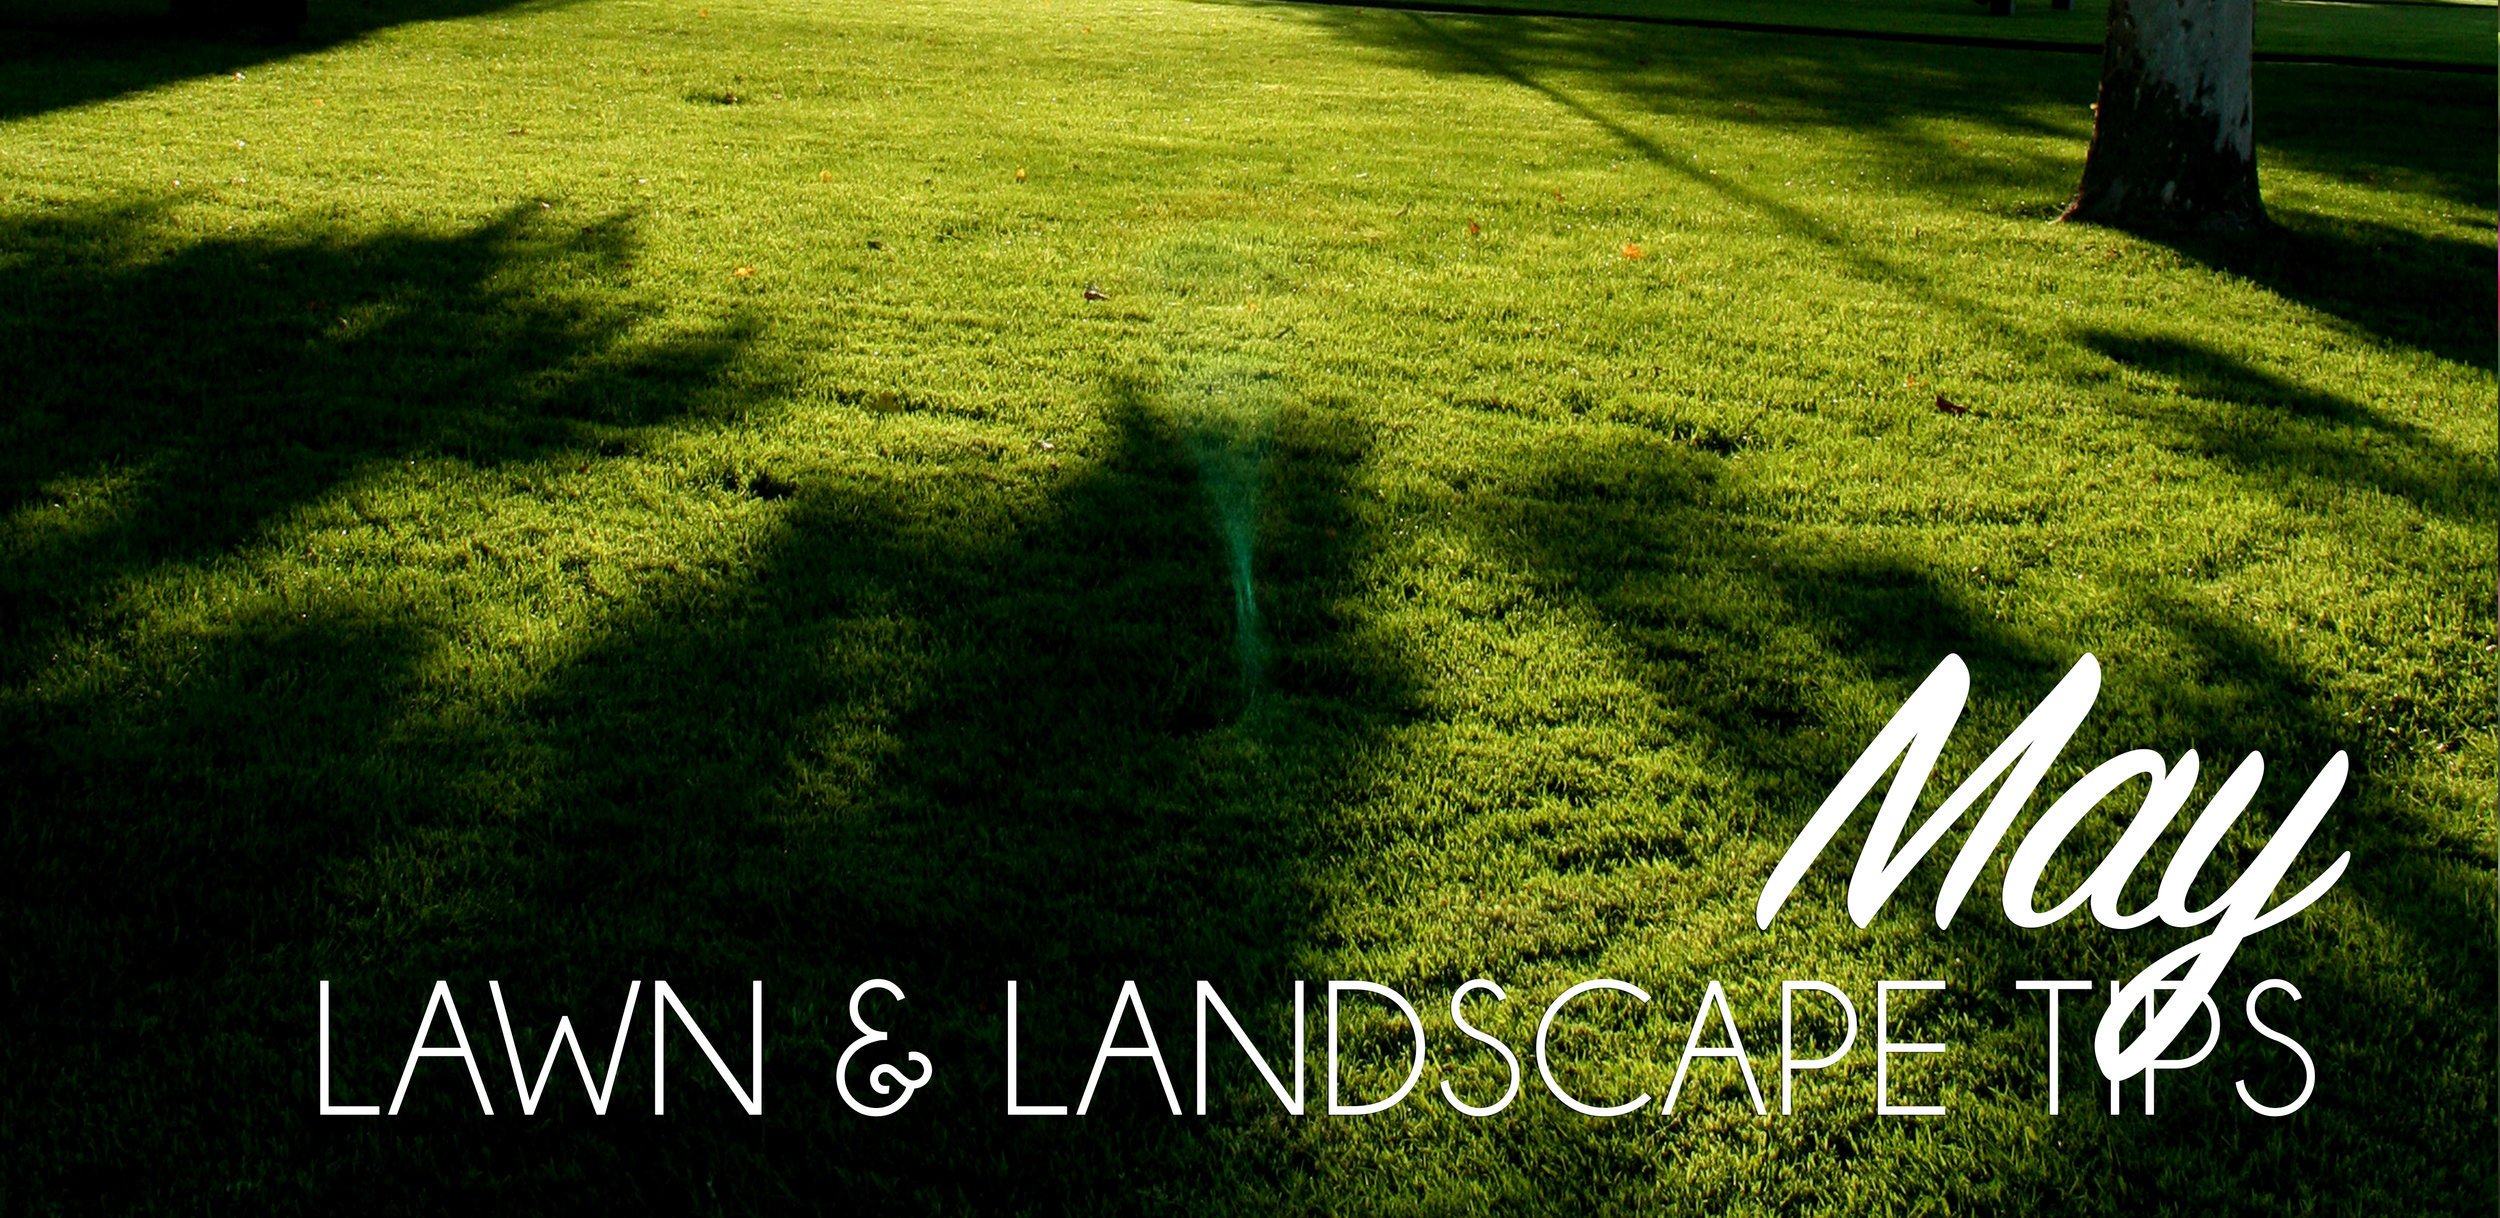 May Lawn & Landscape Tips.jpg